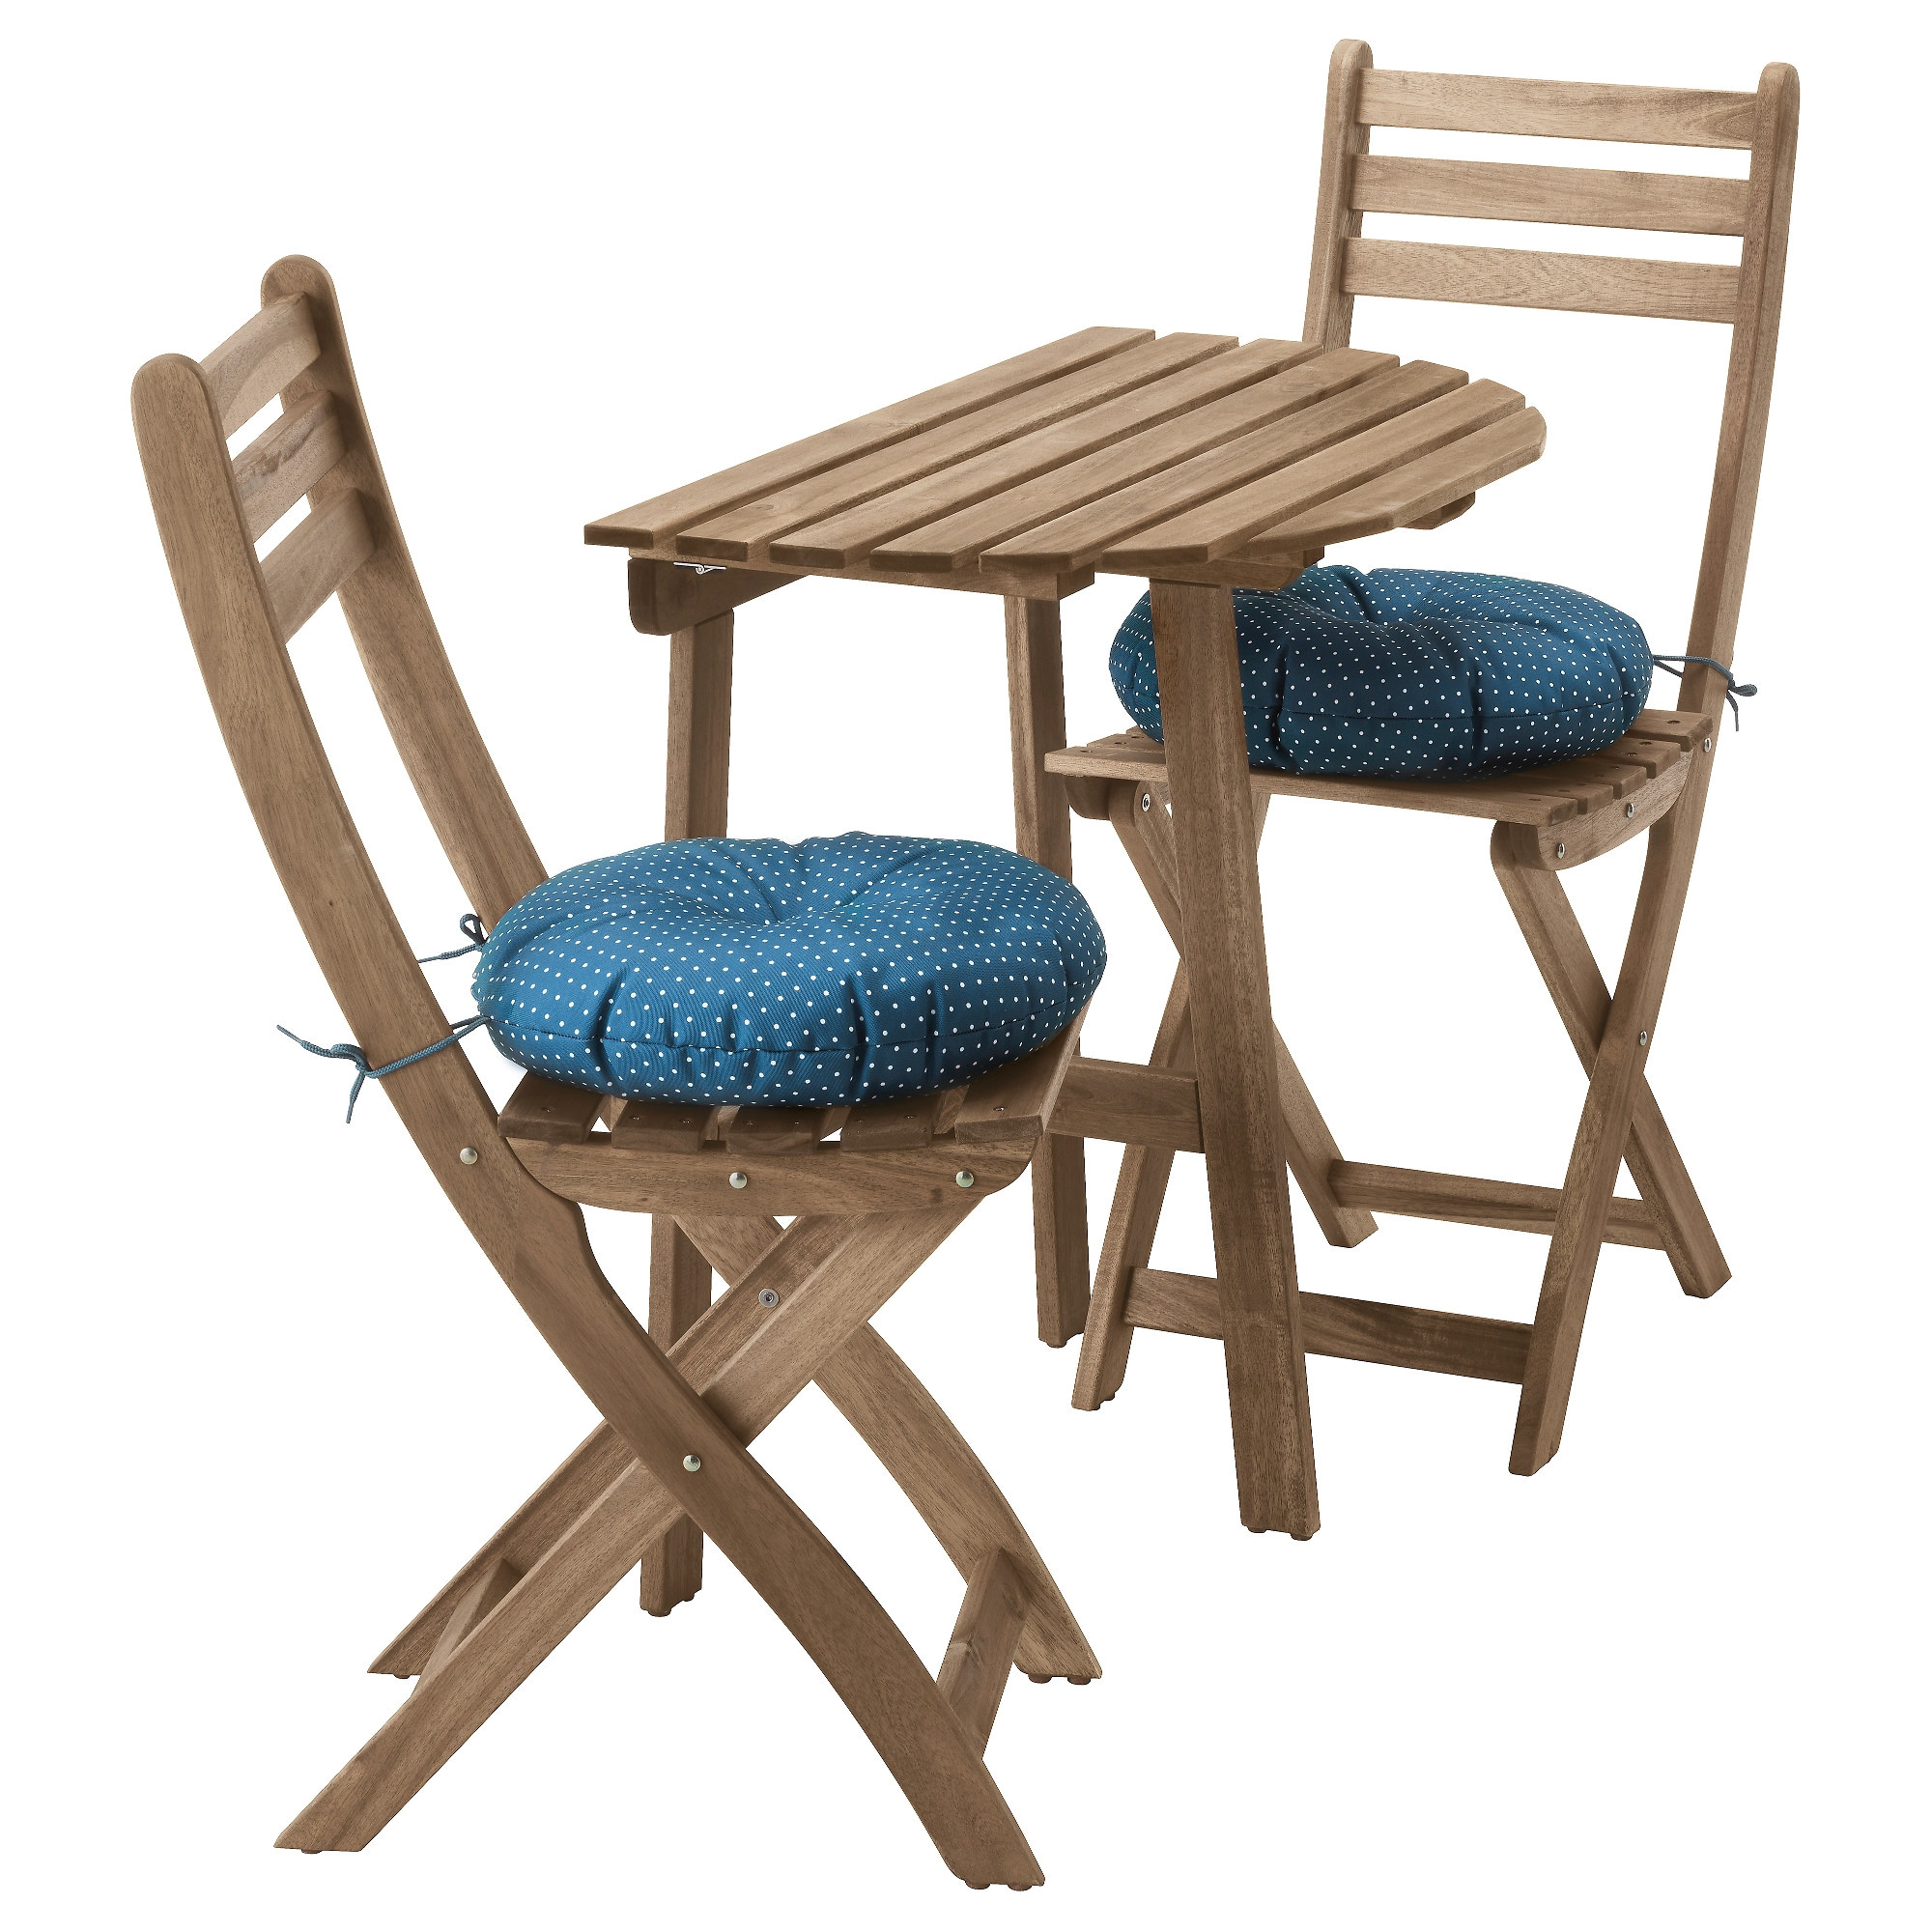 ikea askholmen table f wall 2 fold chairs outdoor